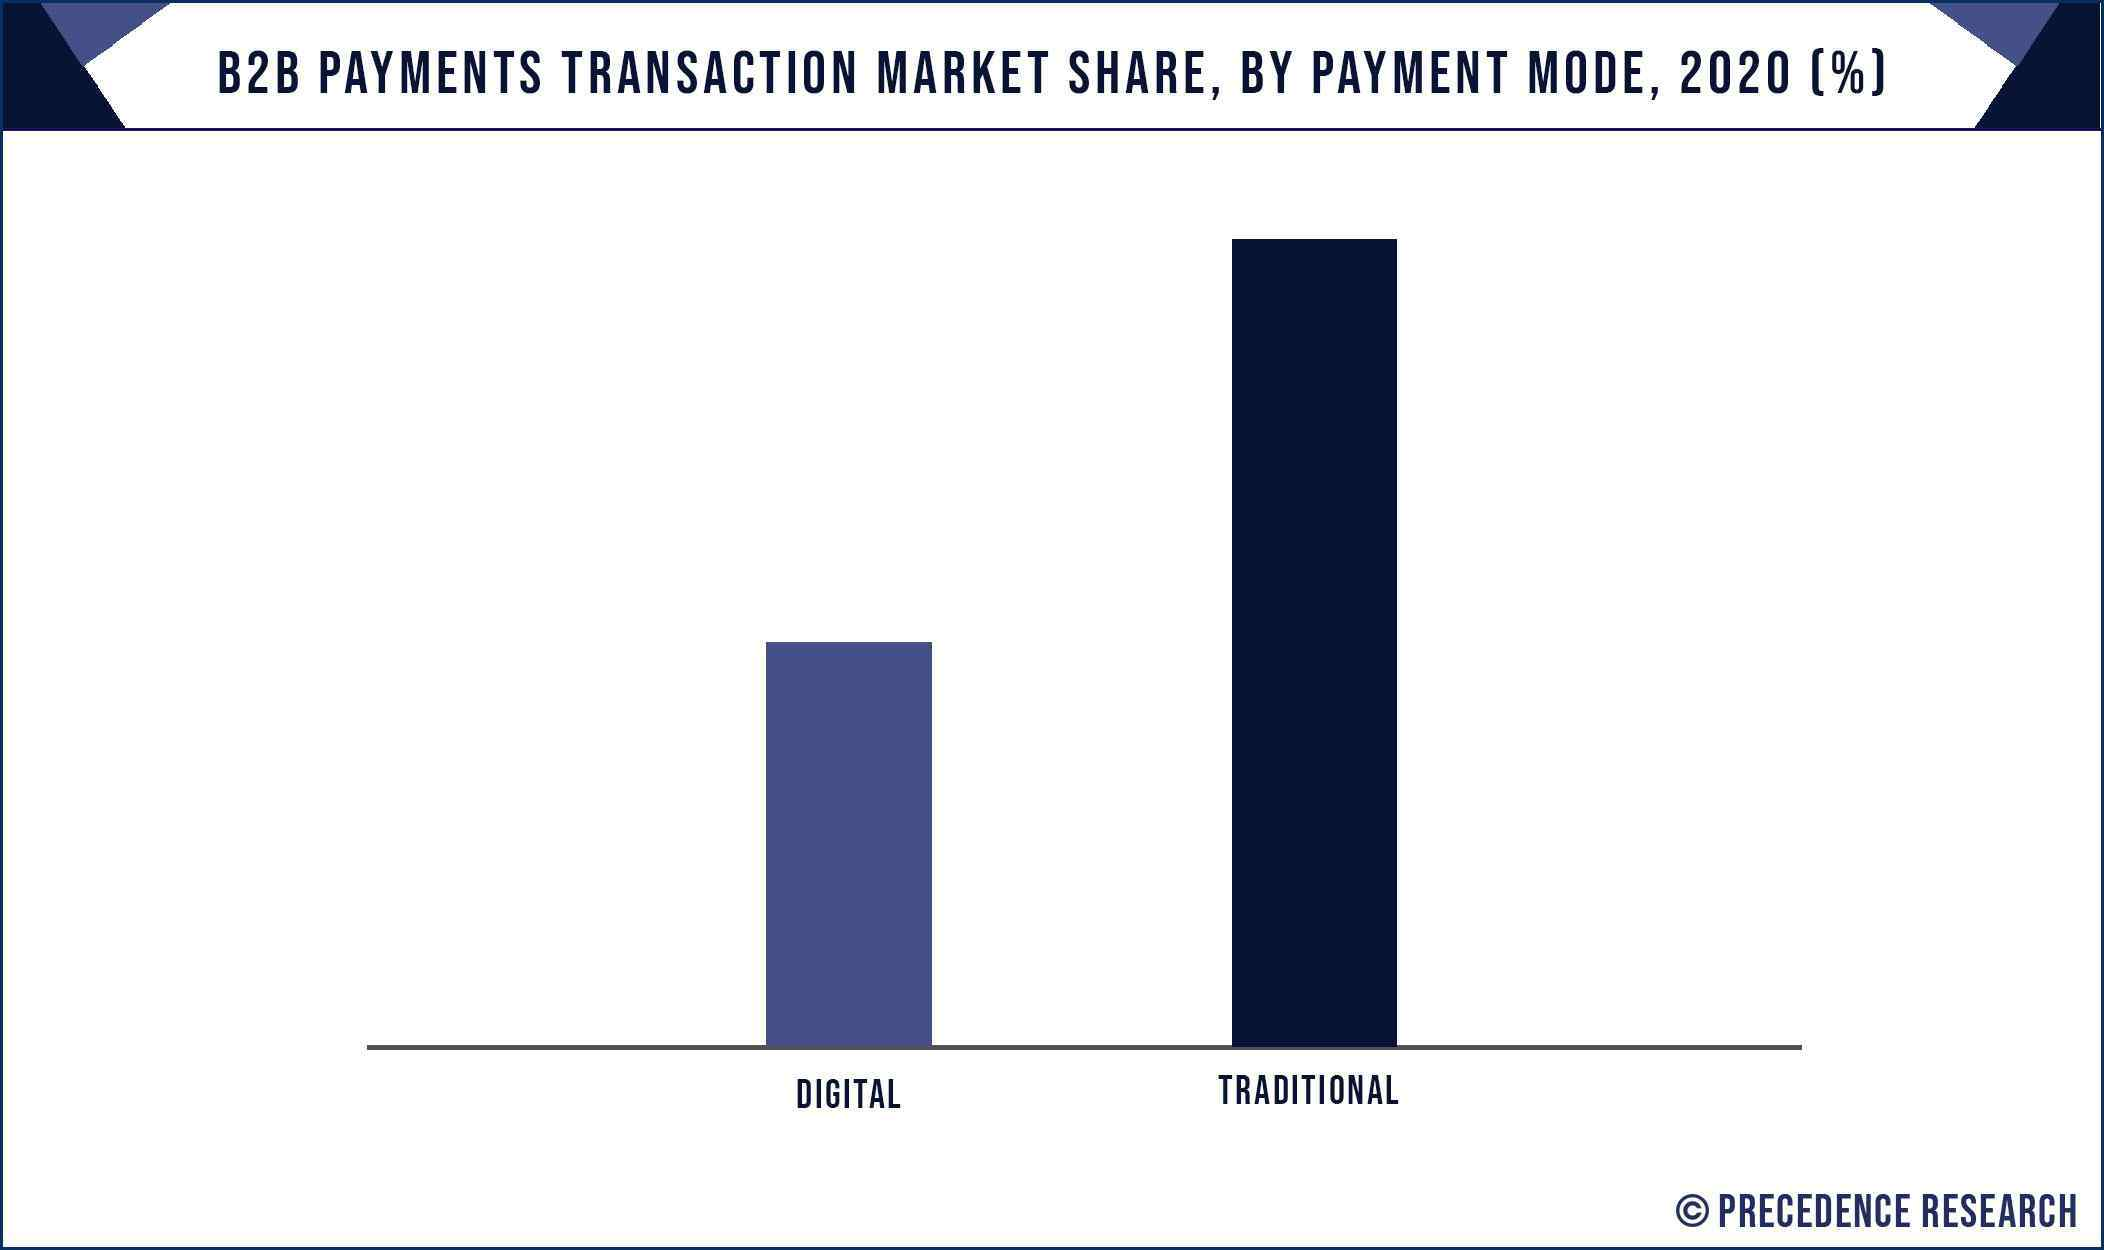 B2B Payments Transaction Market Share, By Payment Mode, 2020 (%)